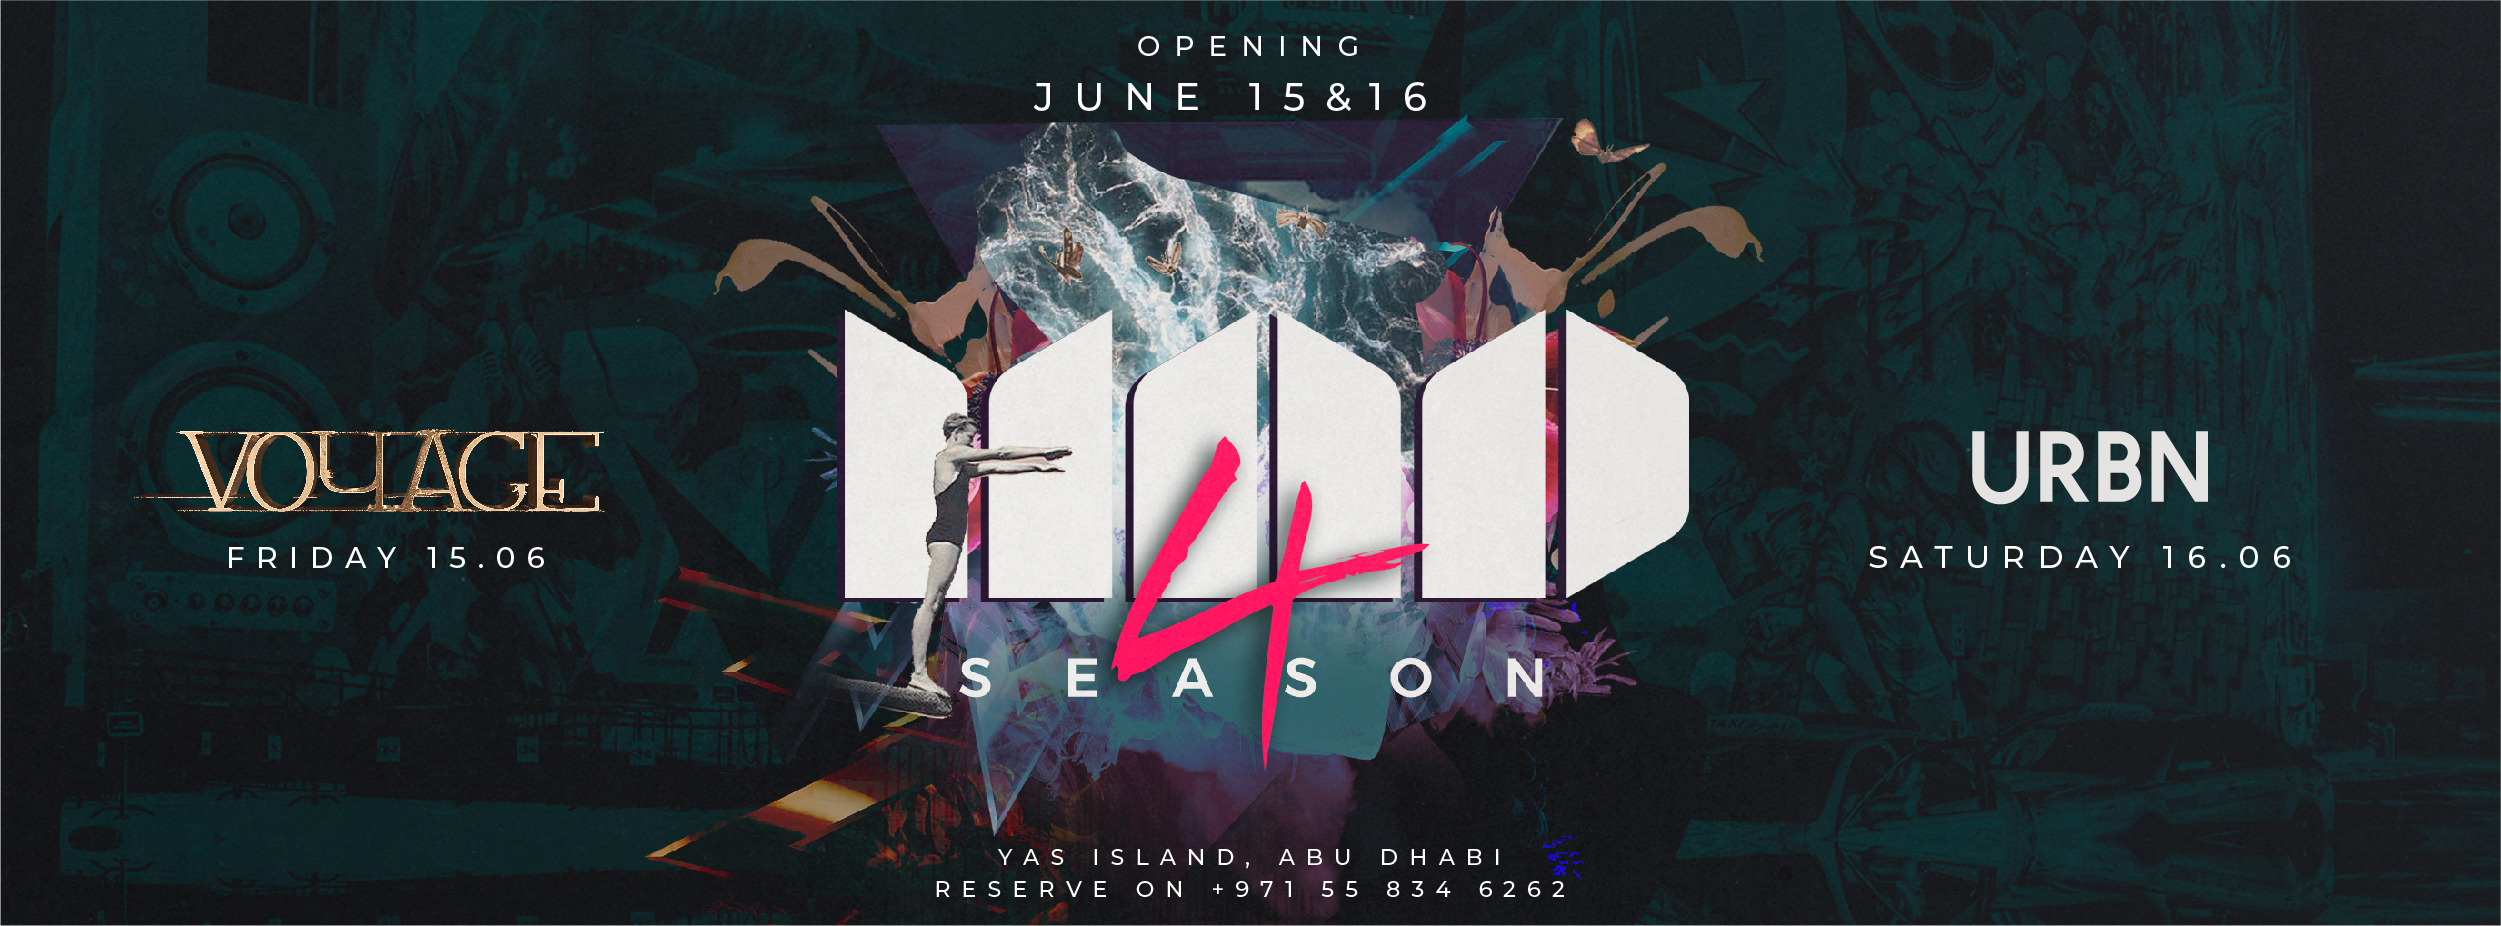 URBN Season Launch @ MAD on Yas Island